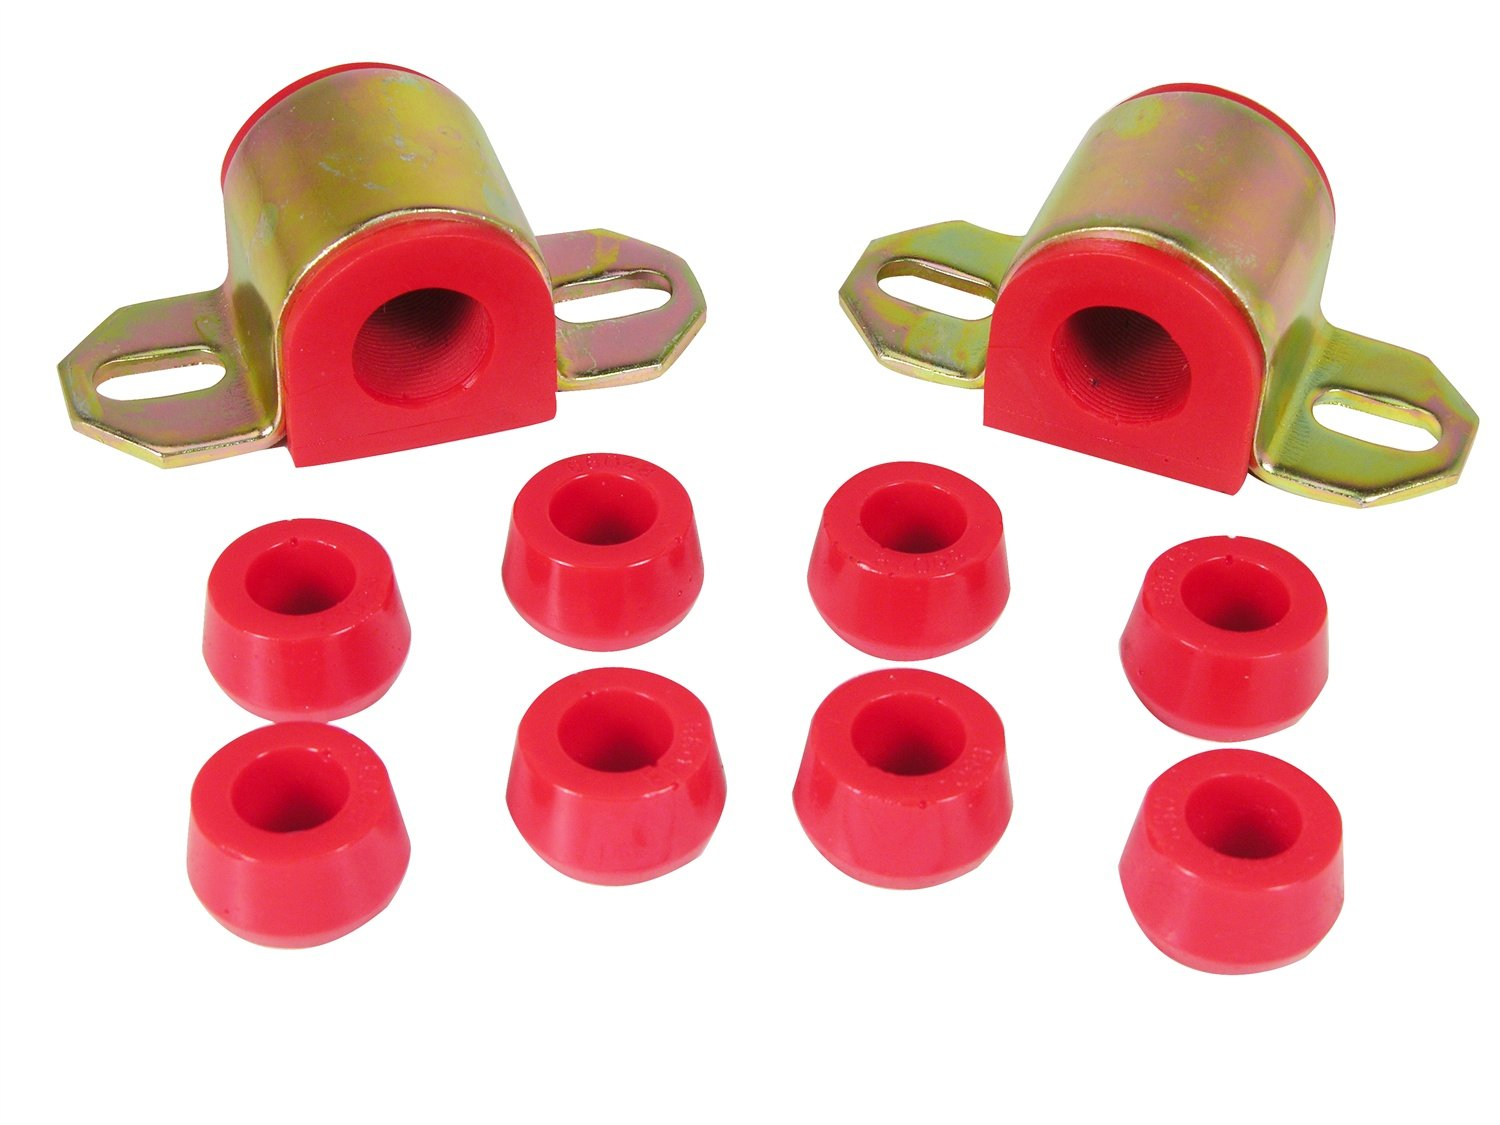 Prothane 1-1110 Red 7/8' Front Sway Bar Bushing Kit for CJ